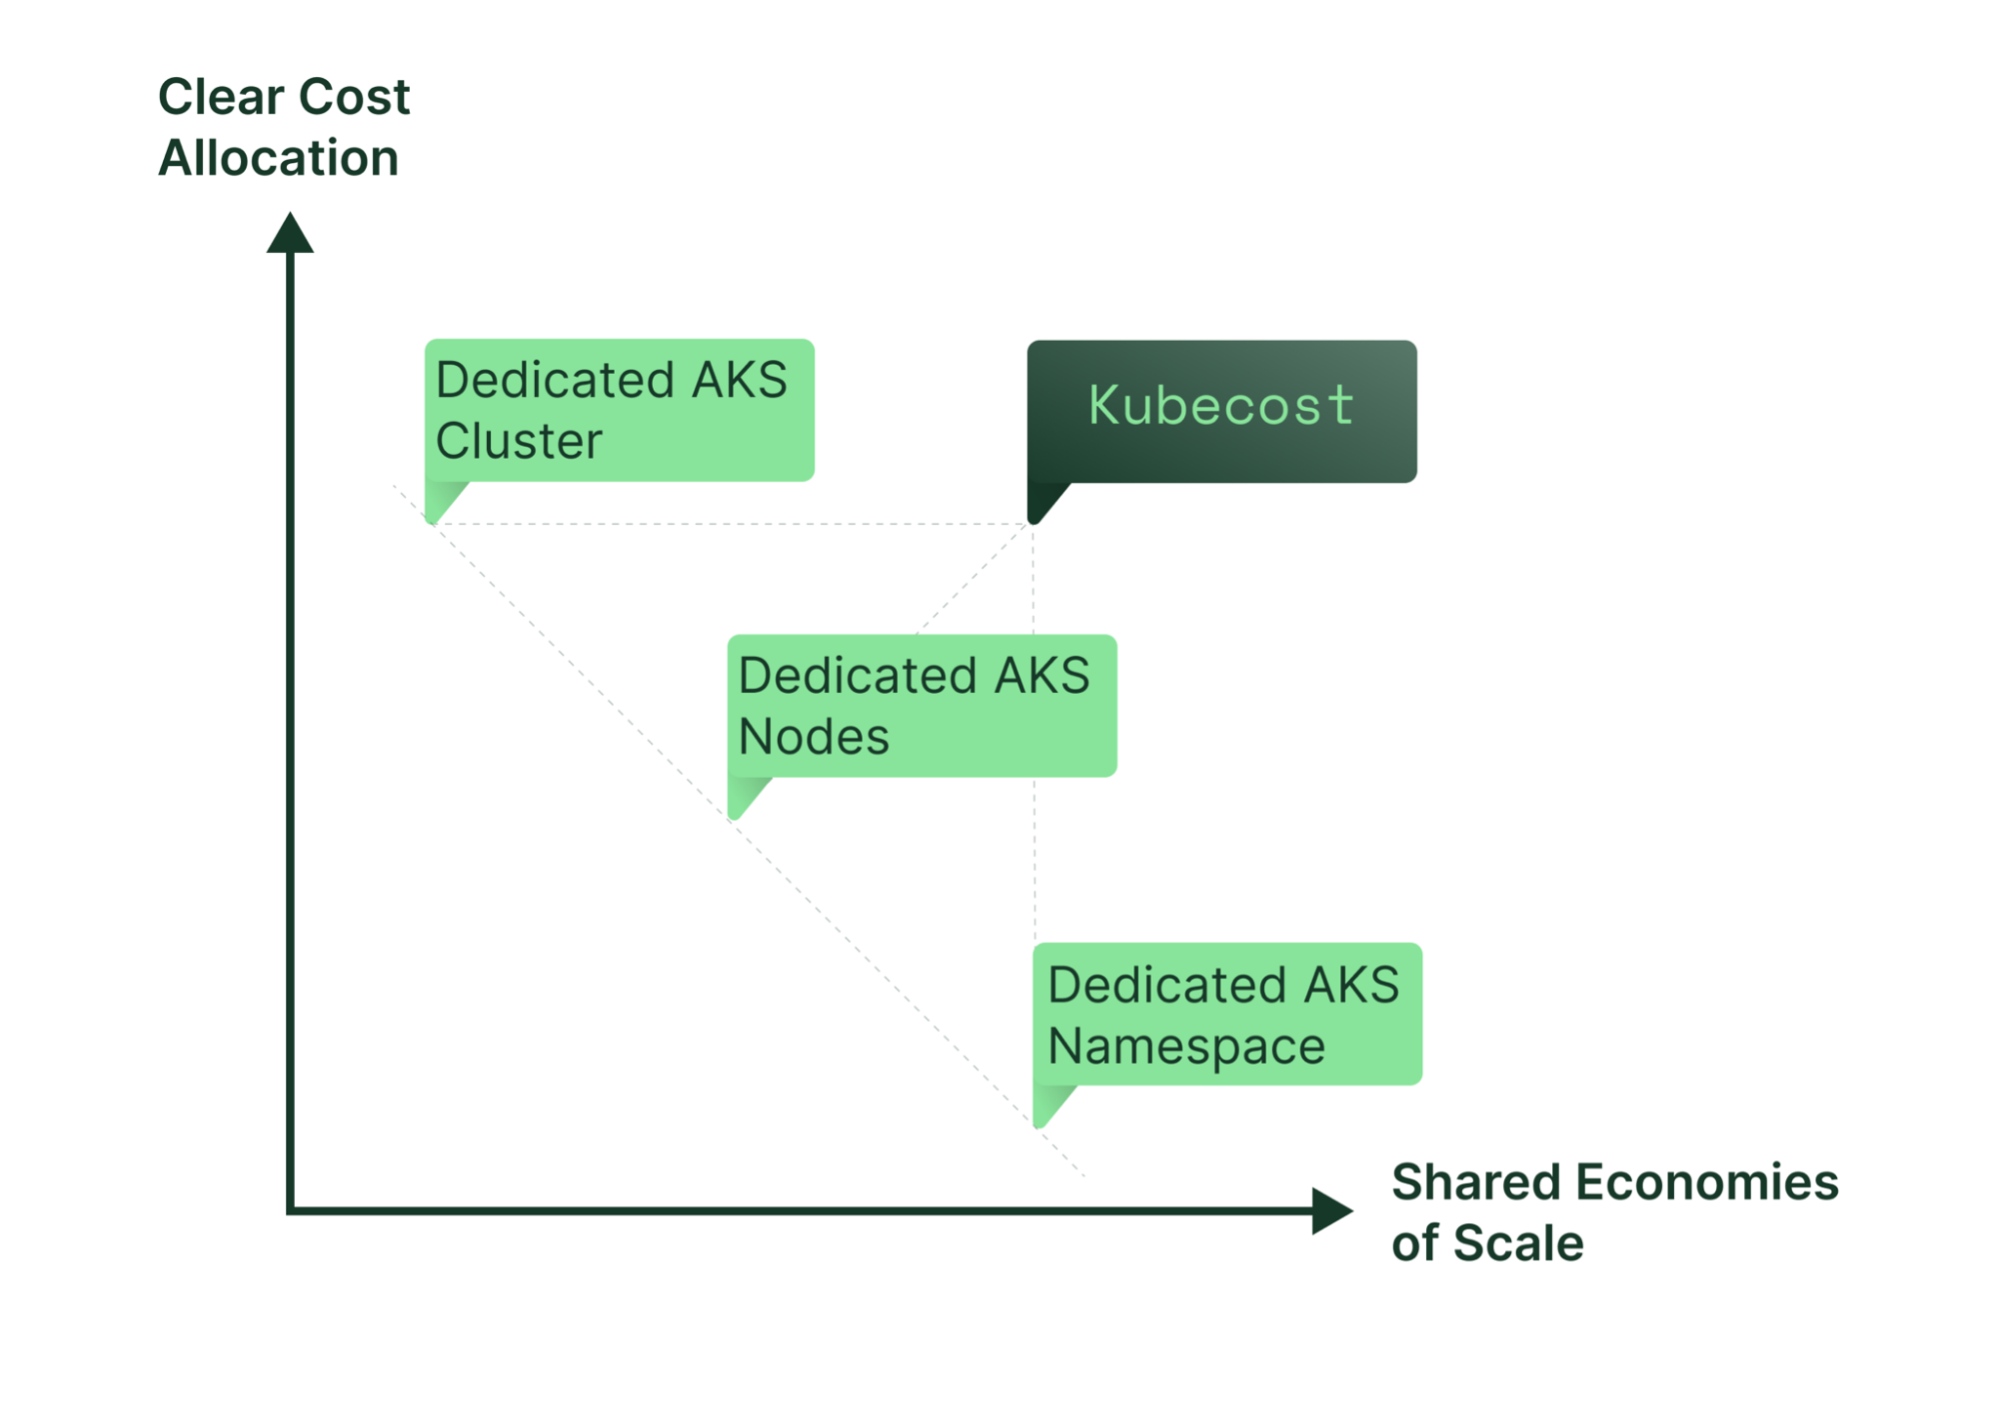 With Kubecost, you can share AKS clusters and still clearly allocate shared costs.